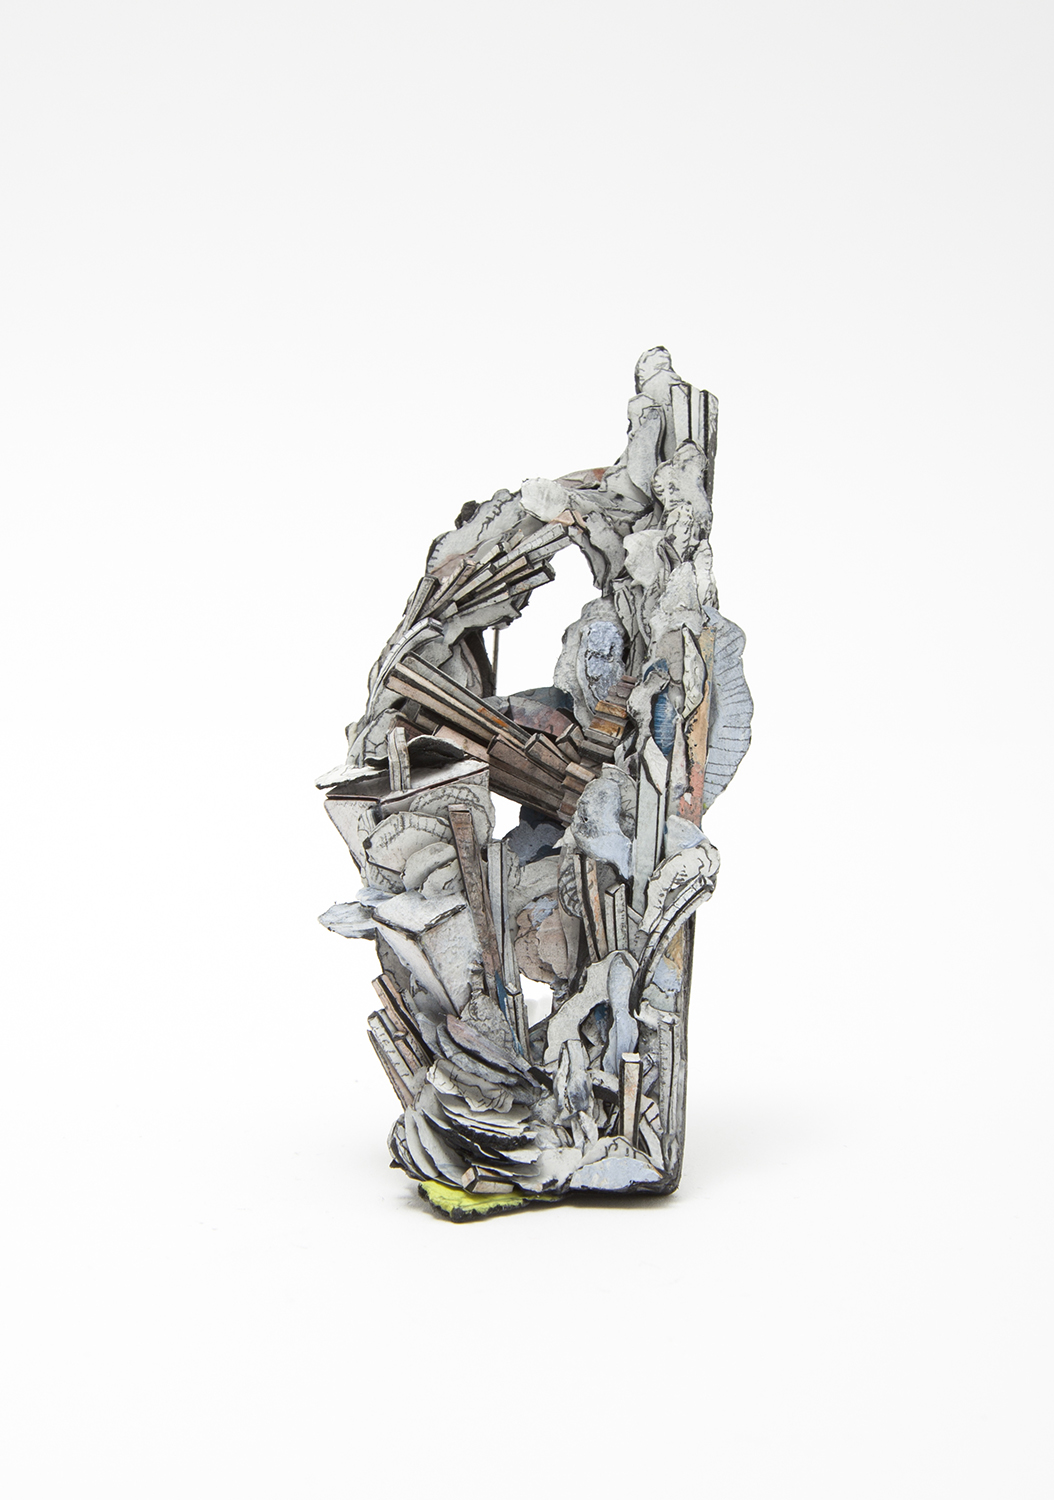 Untitled | Brooch | 2020 | Paper, paint, silver, wood, graphite, stainless steel | 105X50X23mm